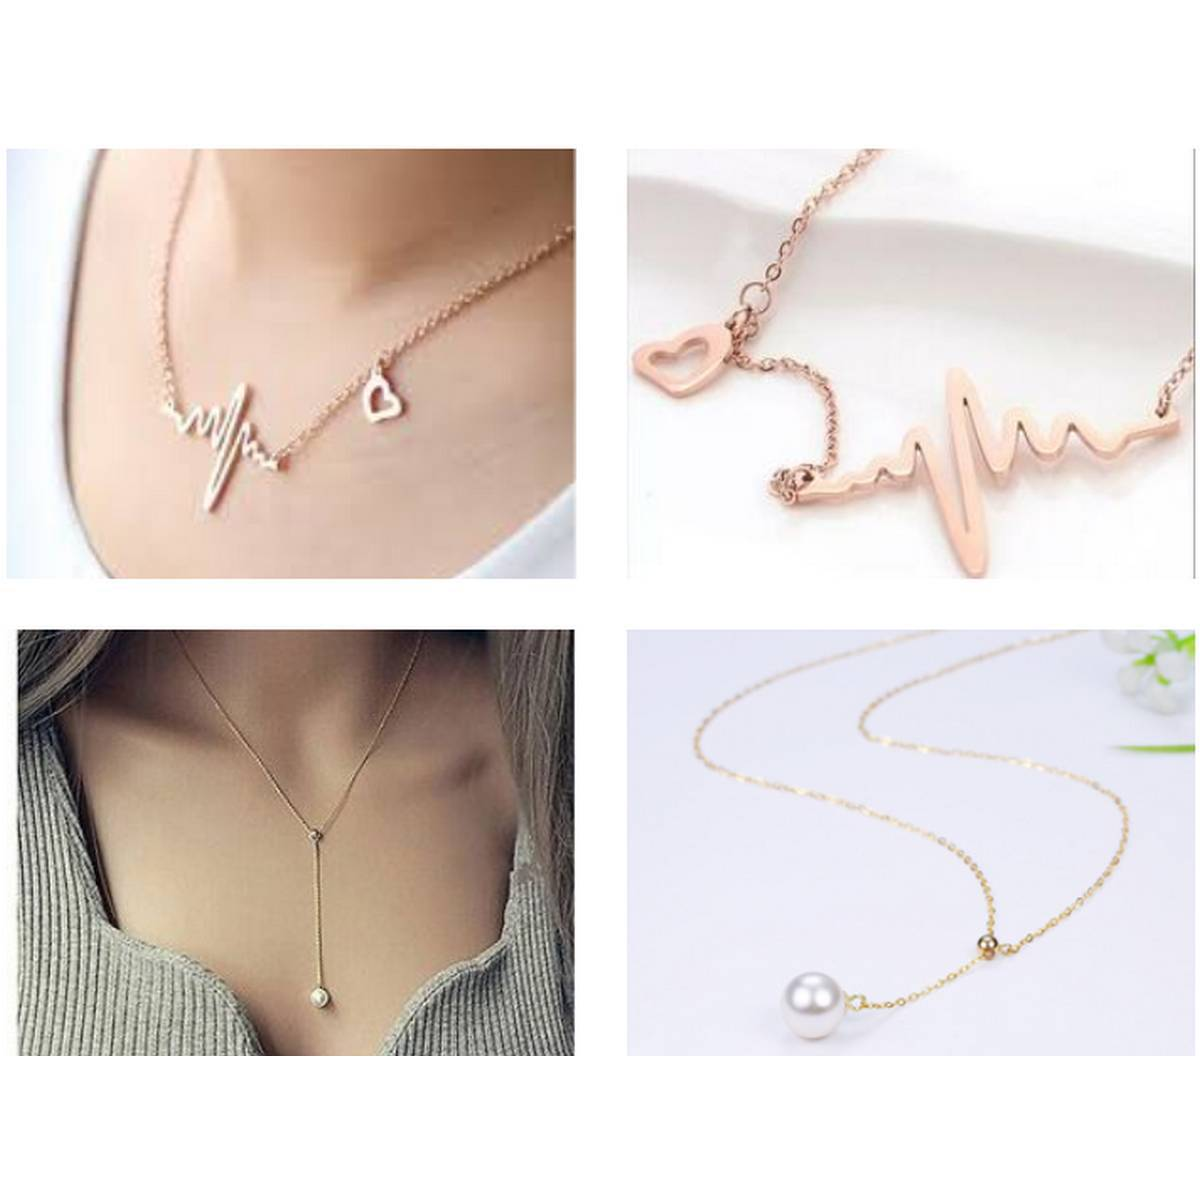 Pack of 2 Super Best Gold Plated Lovely Chain for Girls Heart Beat waves Necklace  and Simple White Pearl Pendent Specially for gift of your loved one